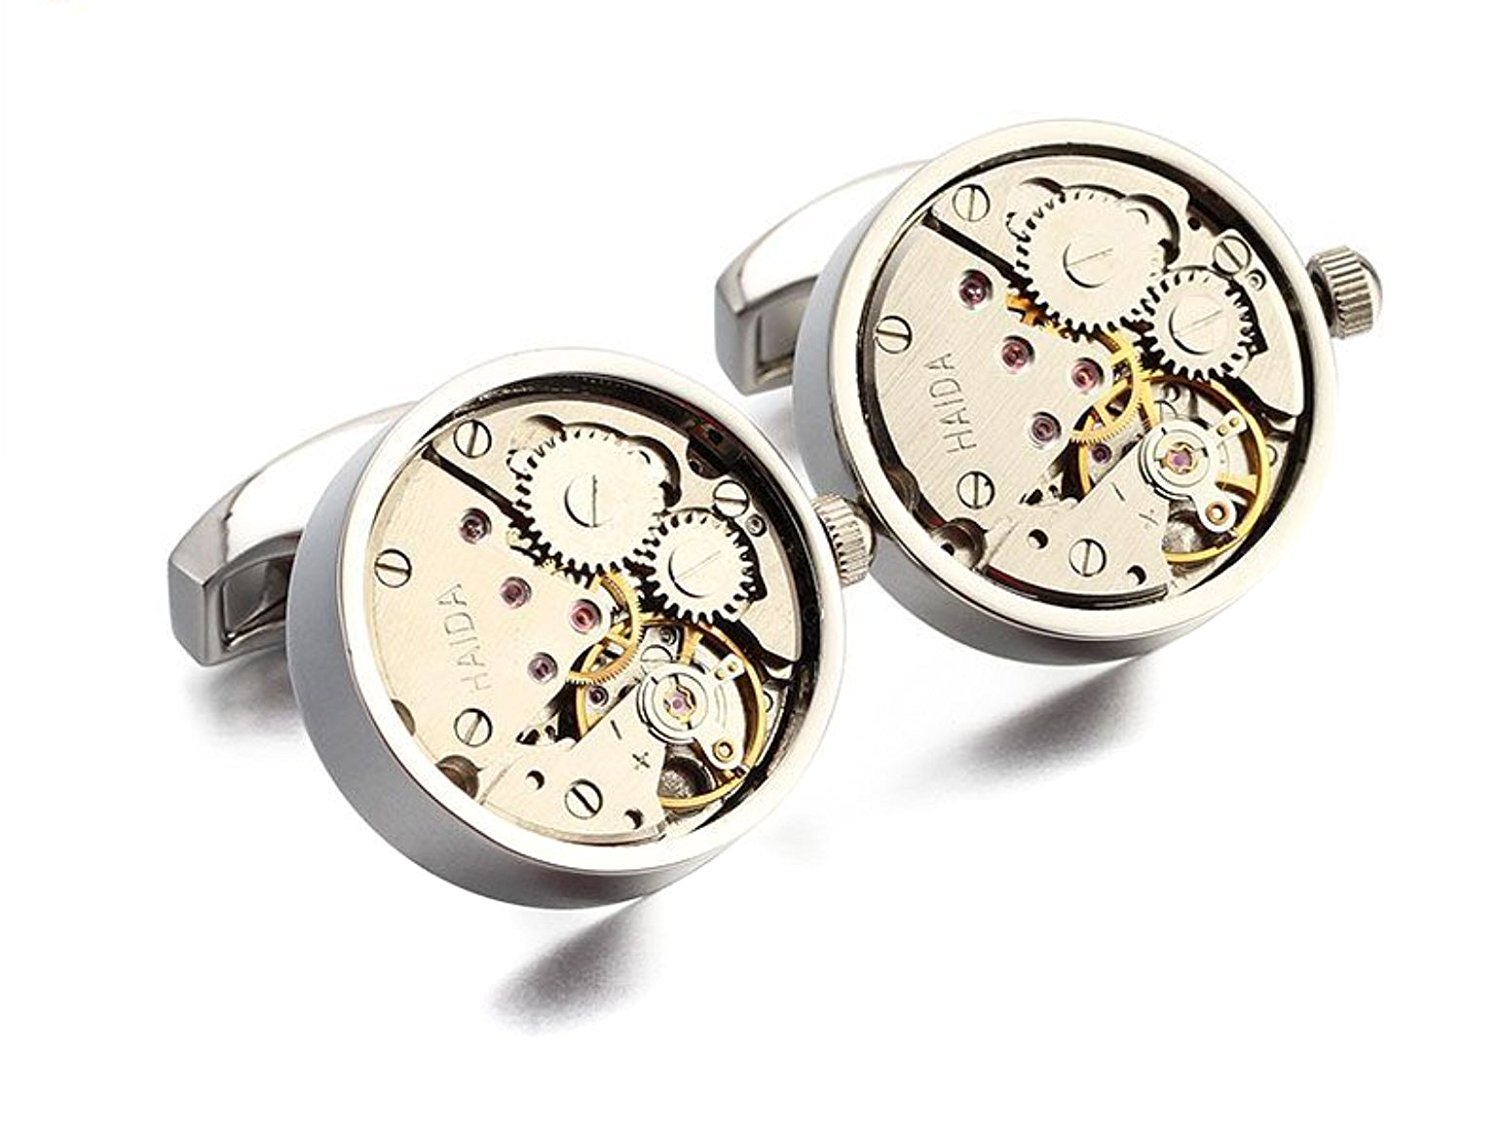 Apex Skeleton Watch Mens Cufflinks | Features Gears, Levers, and Jewels to Provide the Apperance of an Open Faced Mechanial Watch | Available in Silver and Rose-Gold | Luxury Feel, Affordable Price